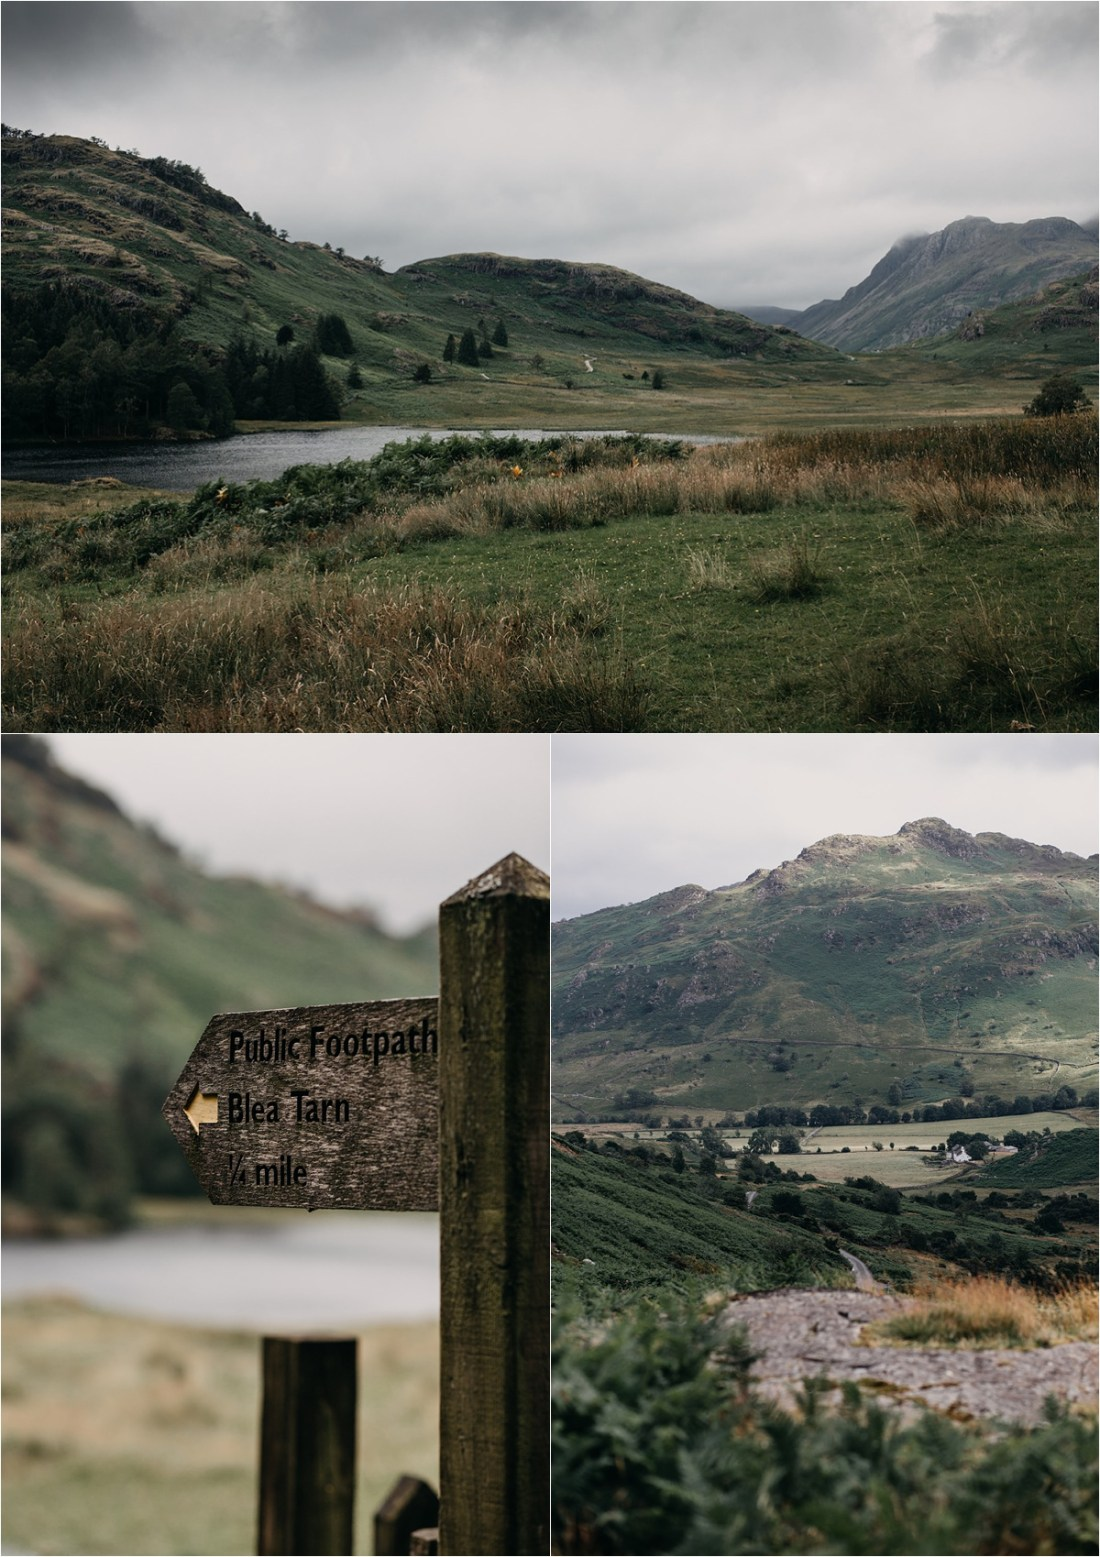 Blea Tarn in the Lake District in England. Photos by Unfurl Photography